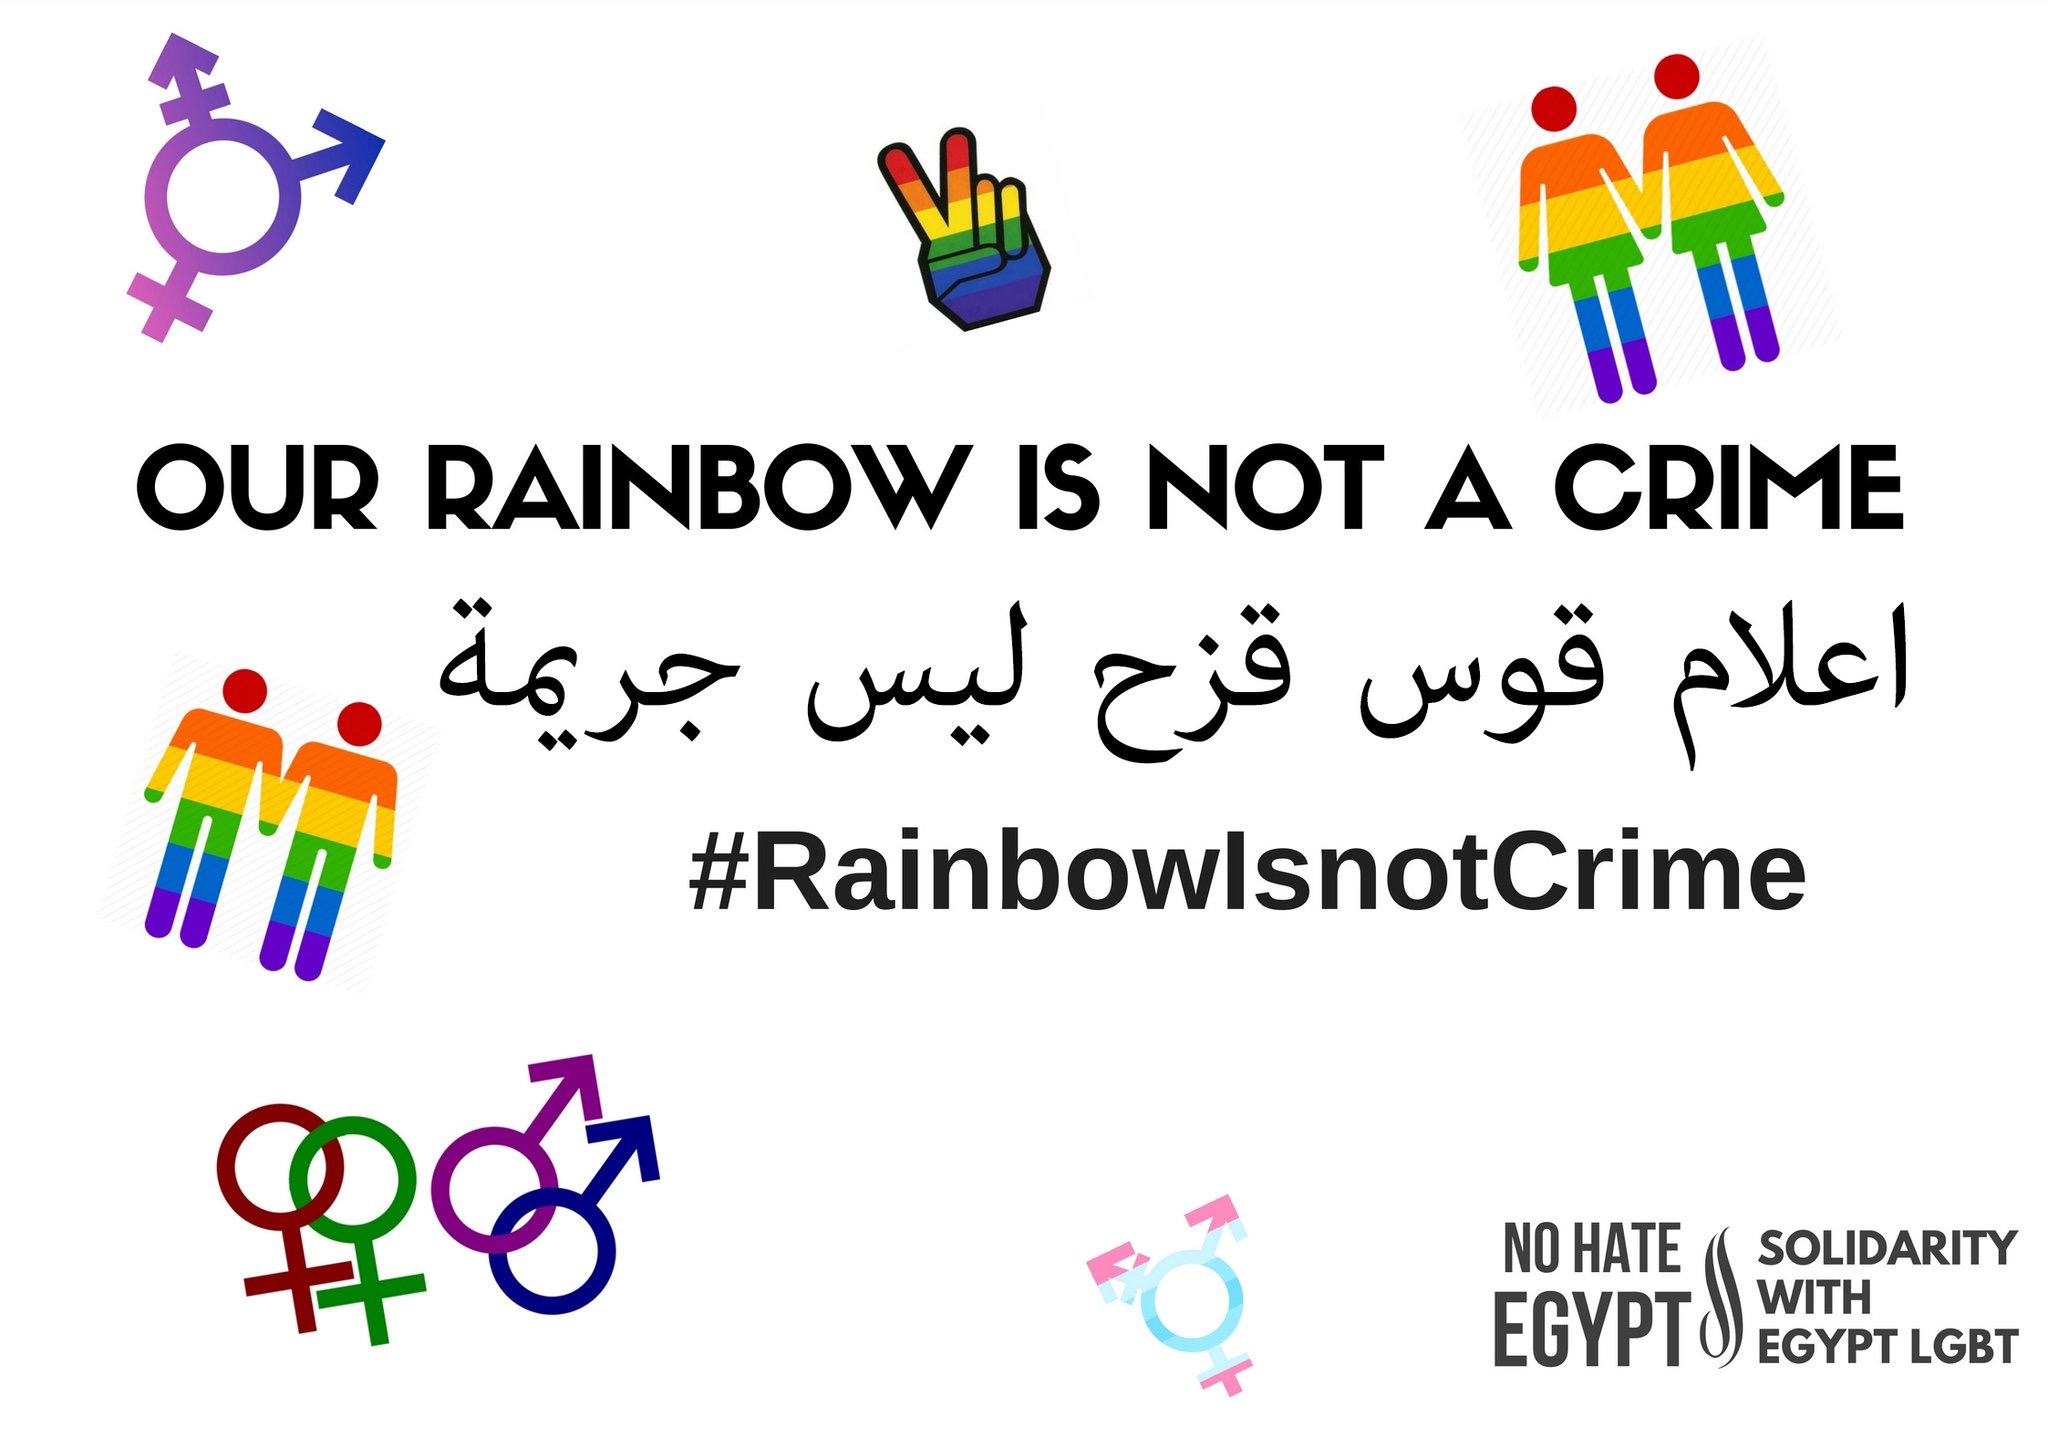 Graphic seeks an end to Egypt's anti-LGBT crackdown by pointing out the fact that supporting LGBT people is not a crime.